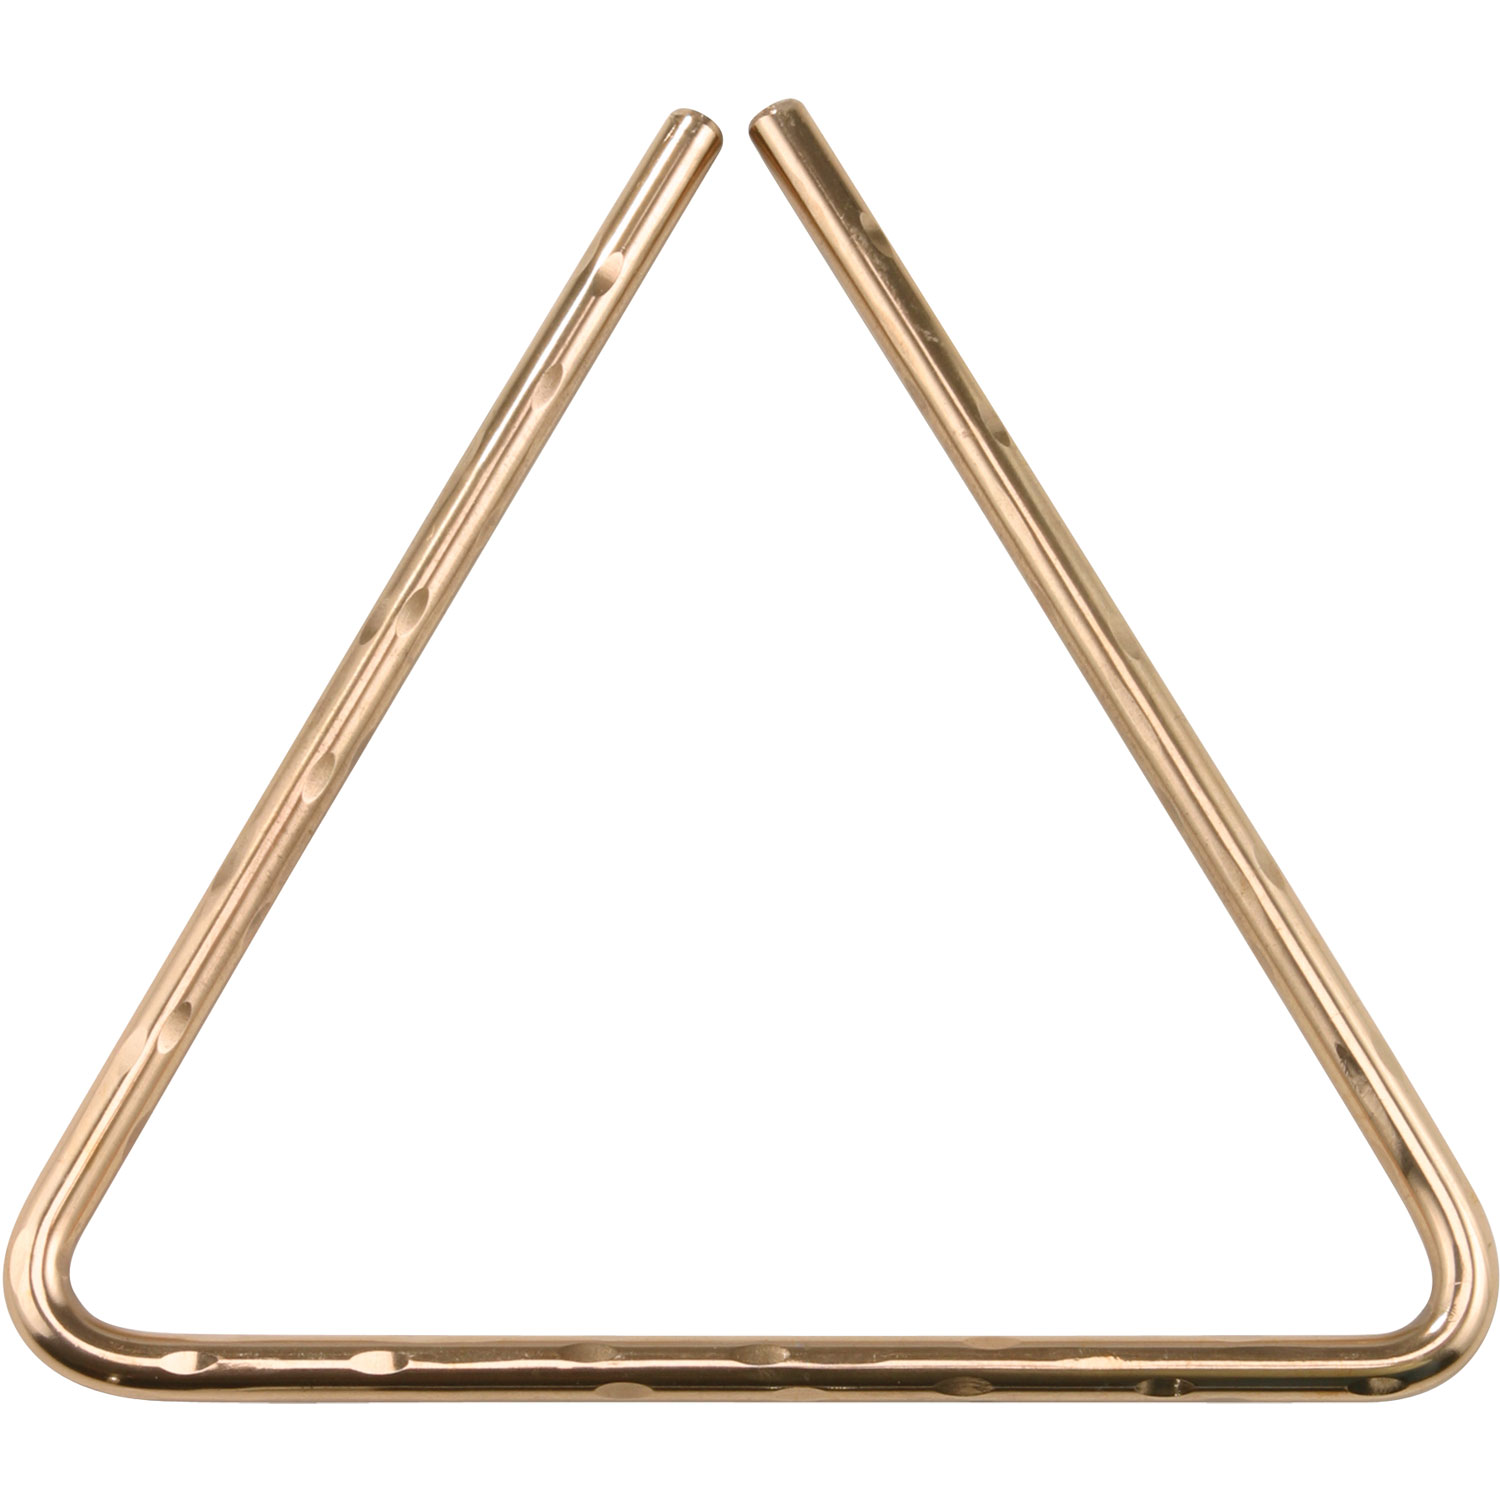 "Sabian 6"" Hand Hammered B8 Bronze Triangle"